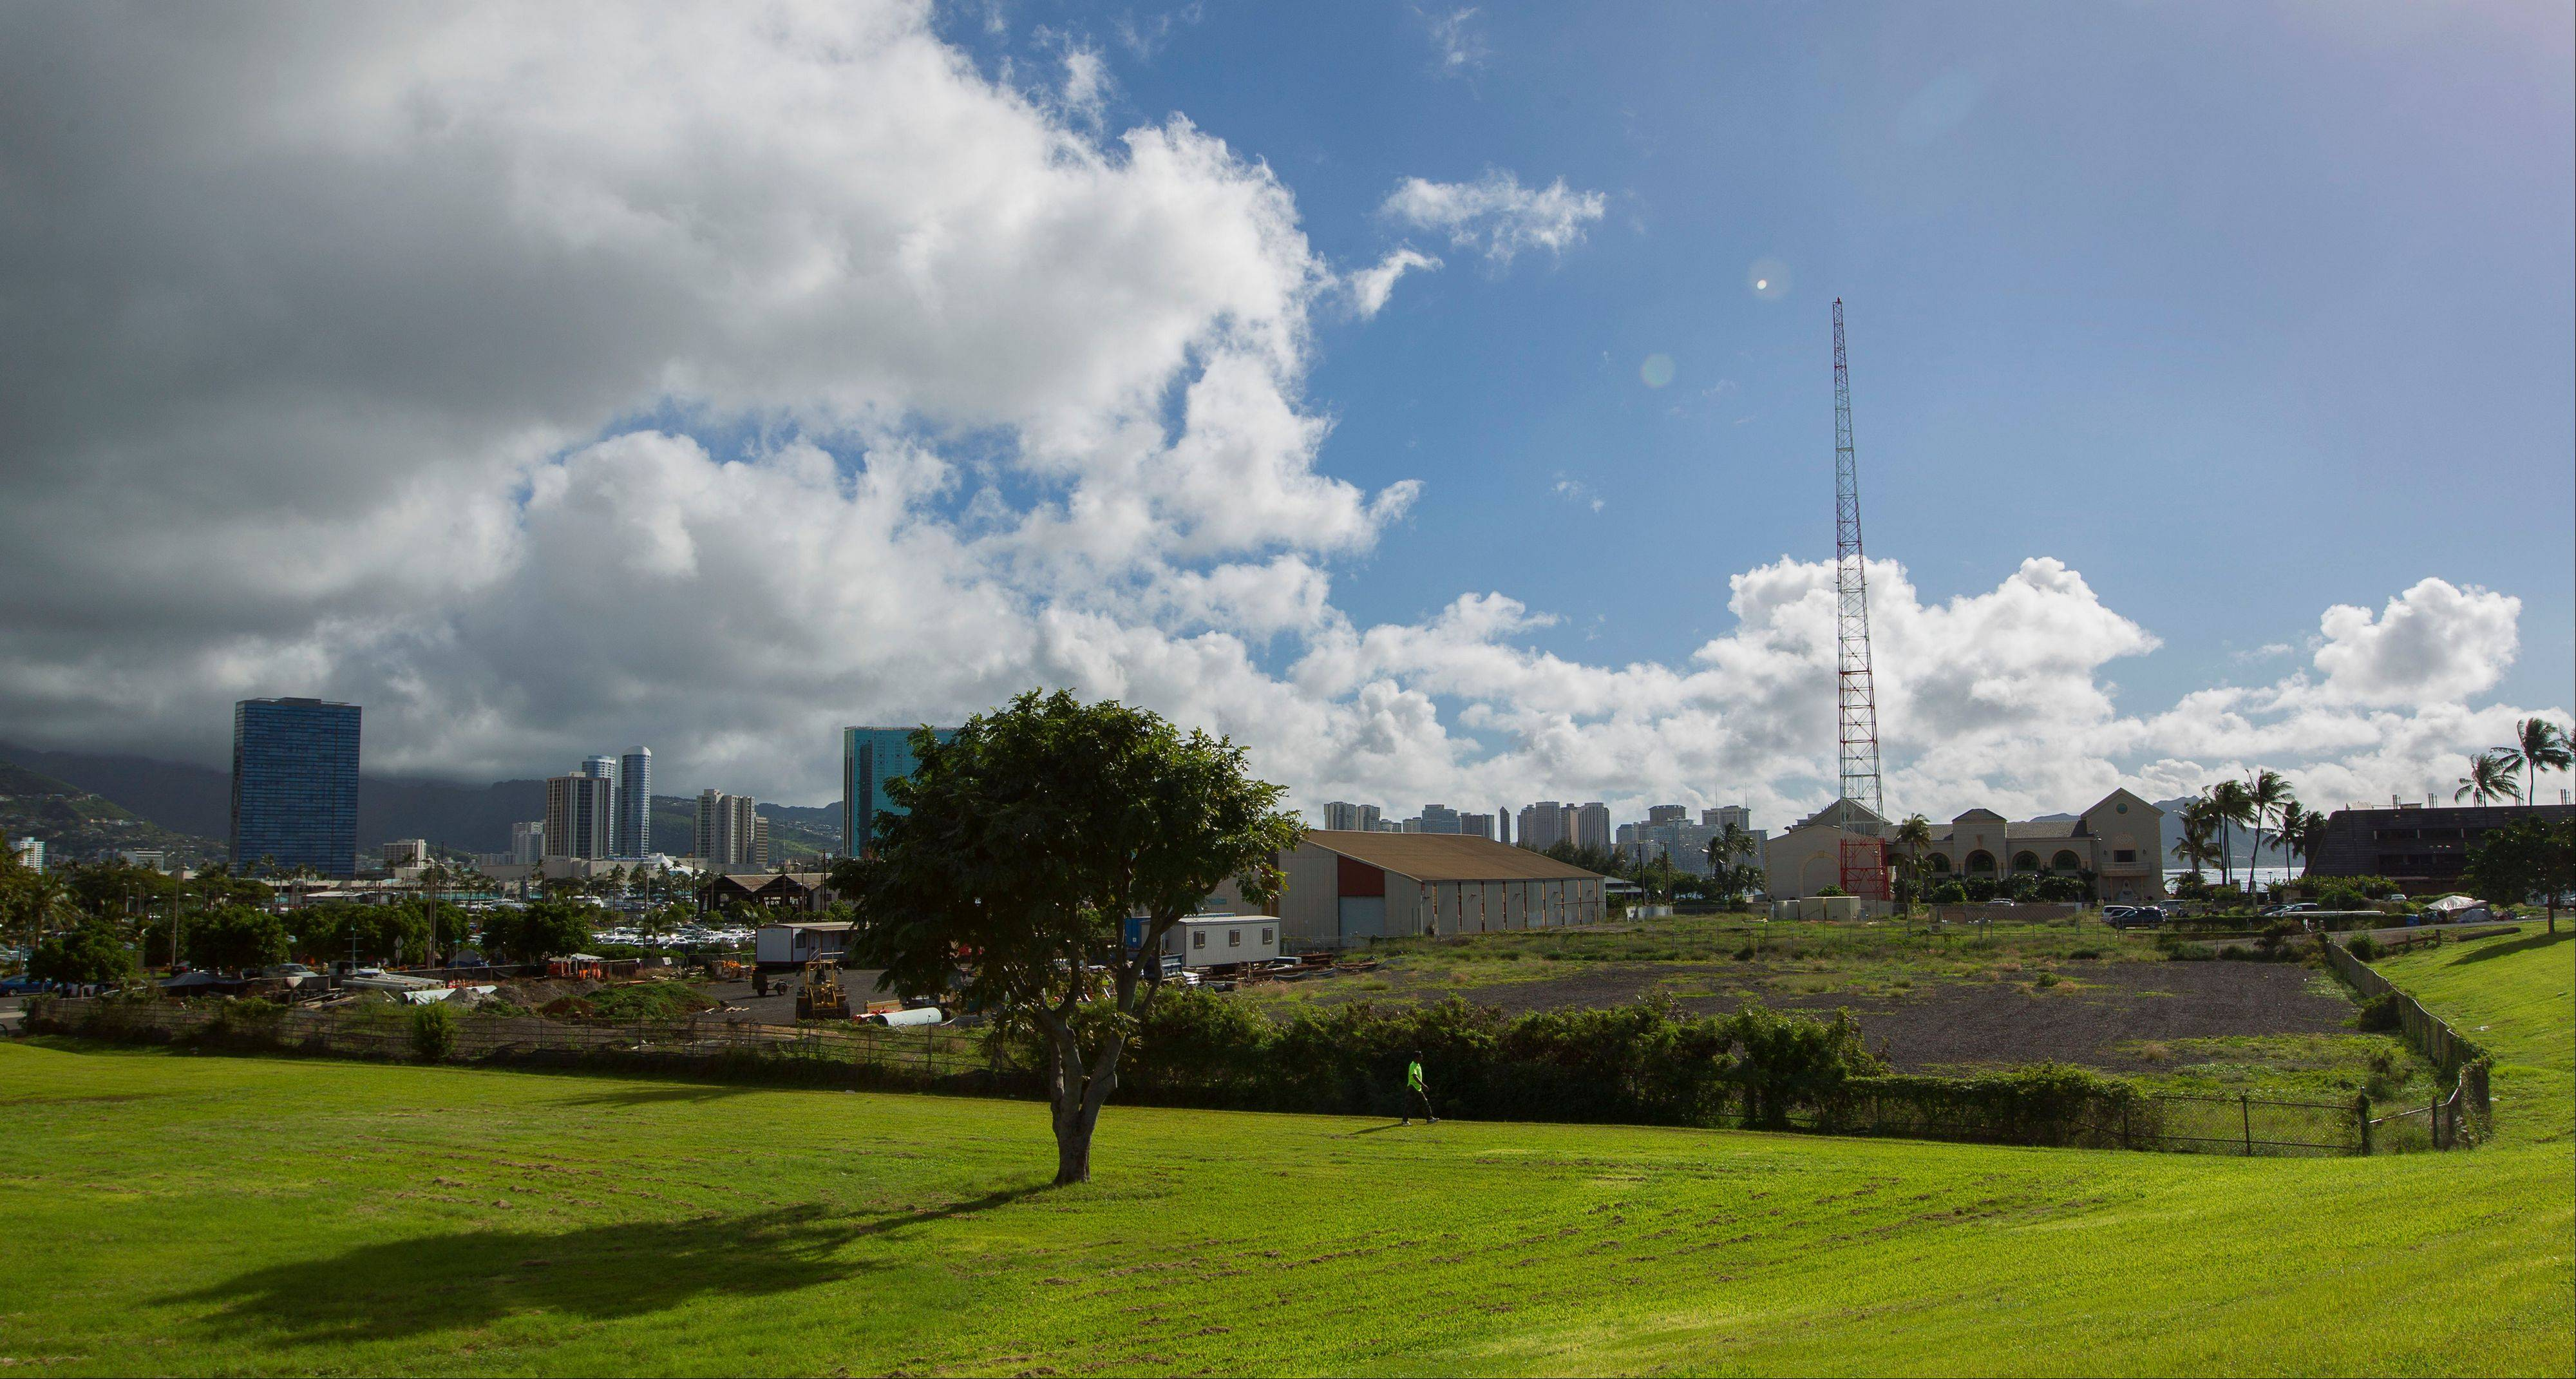 The Kakaako district of Honolulu is one possible location for the Barack Obama Presidential Library. The location is considered prime real estate with views of the ocean and Koolau mountains.